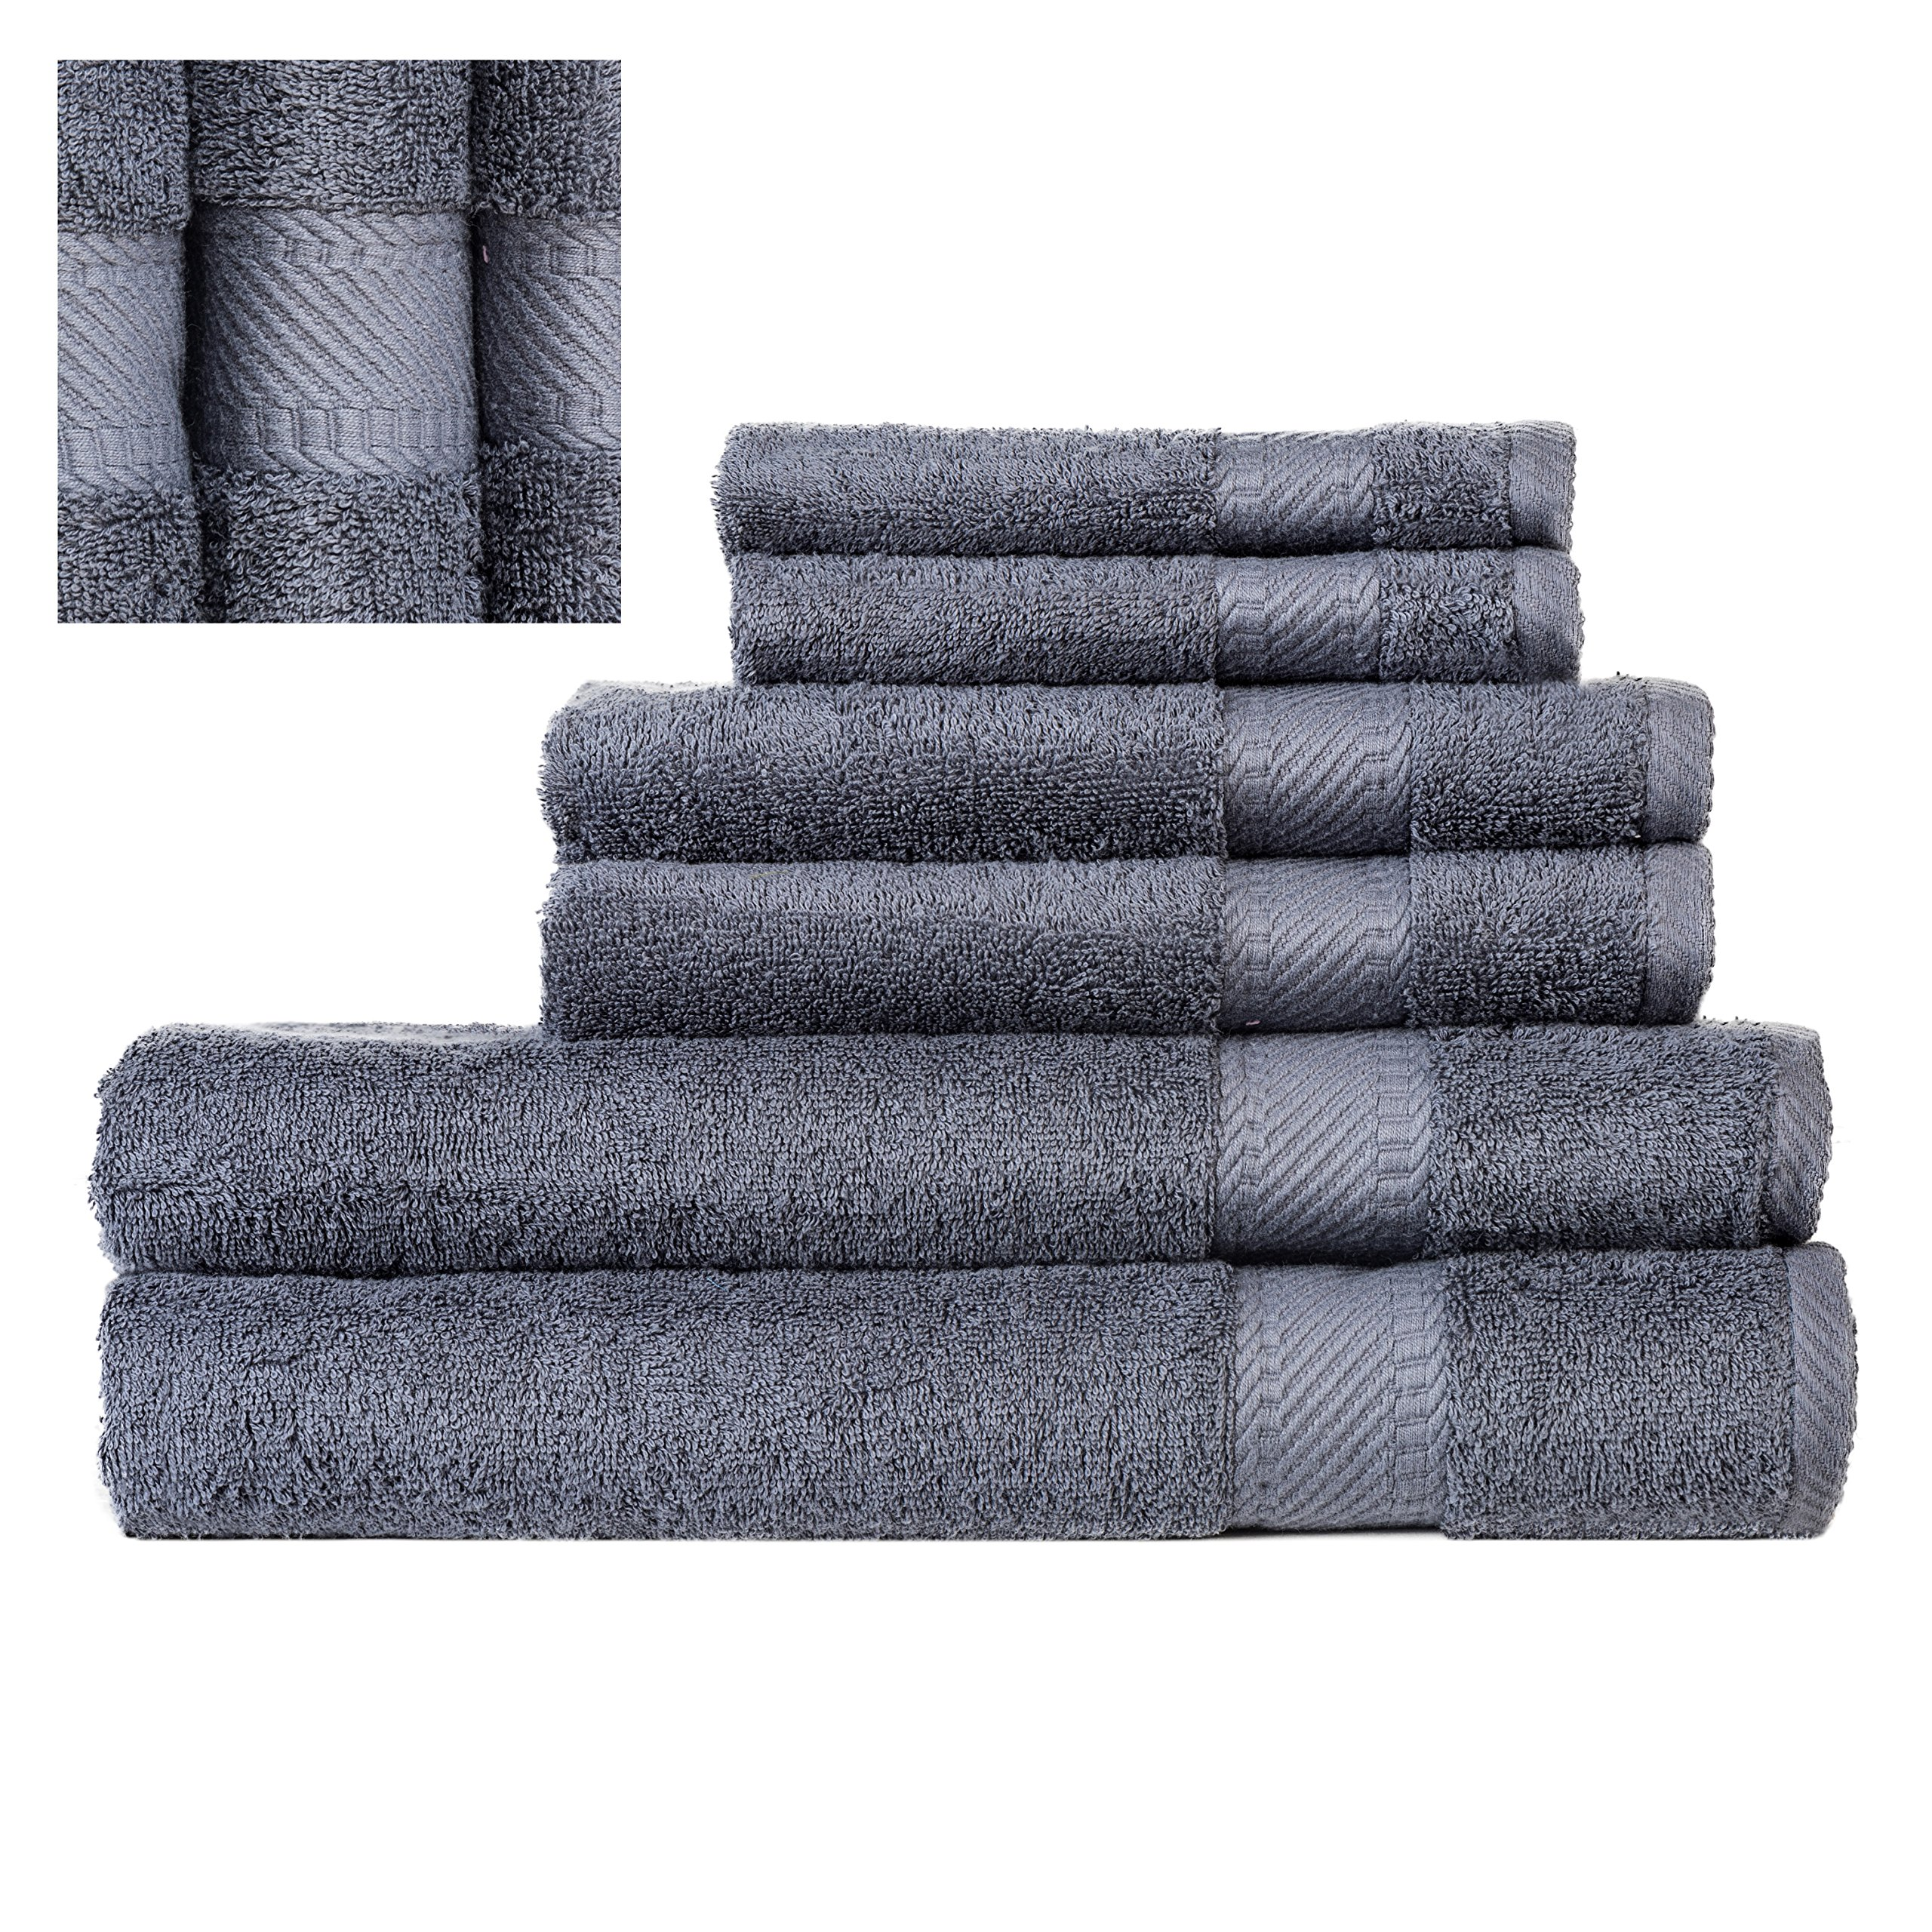 ixirhome Turkish Towel Set 6 Piece,100% Cotton,2 Bath Towels, 2 Hand Towels and 2 Washcloths, Machine Washable, Hotel Quality, Super Soft and Highly Absorbent by (Steel Blue)